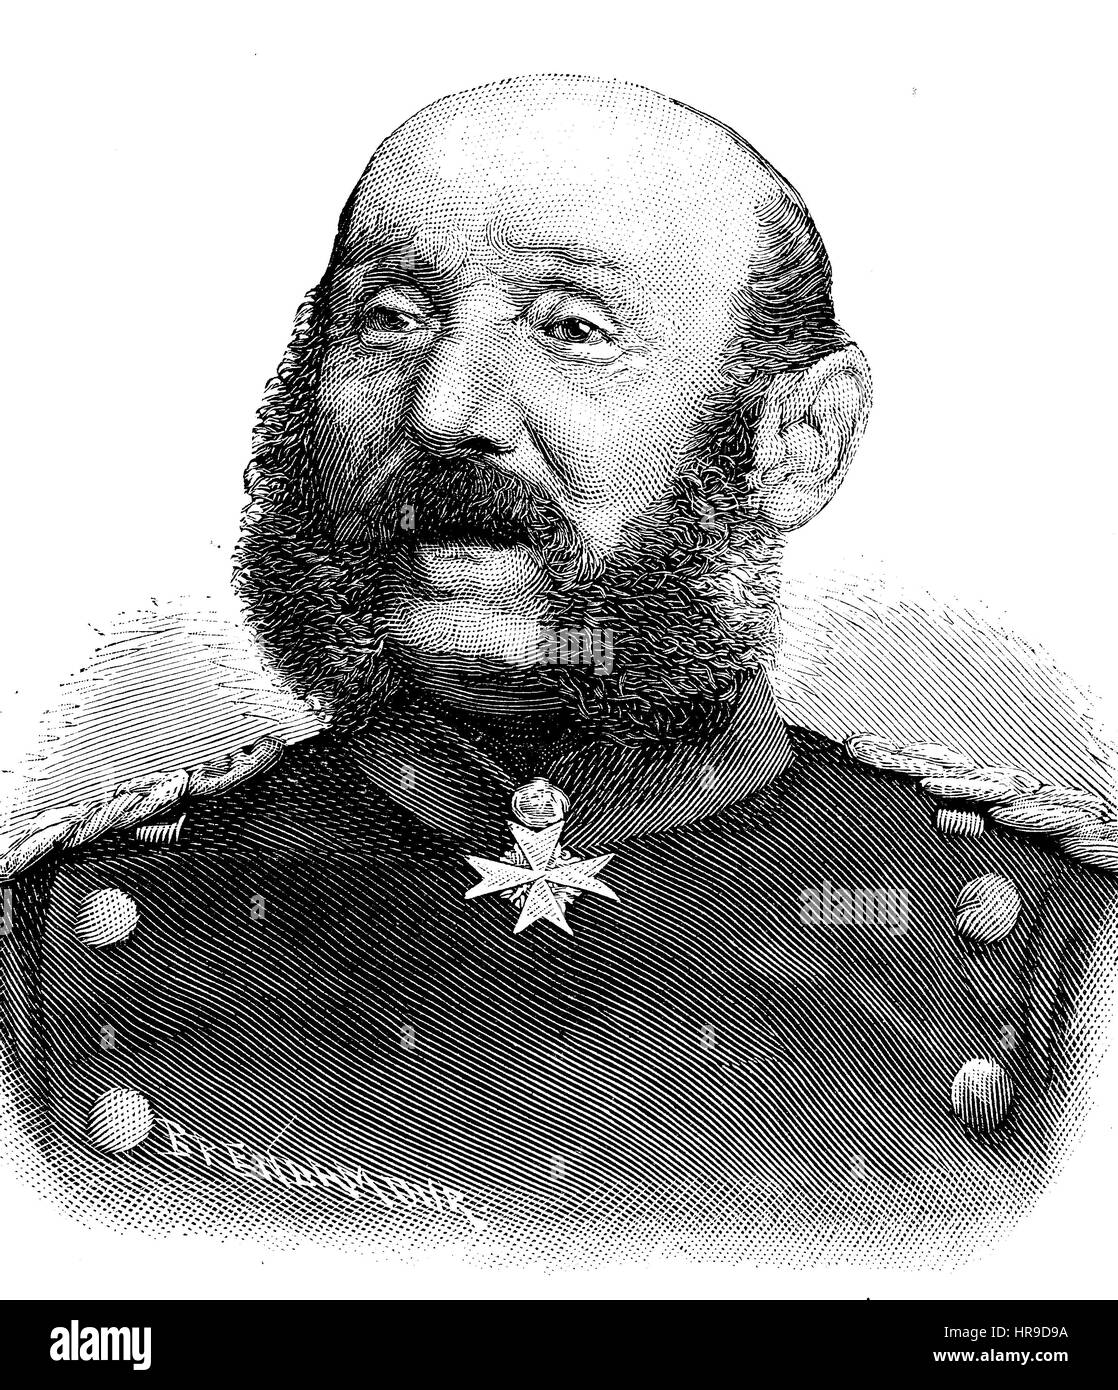 Albert Ehrenreich Gustav von Manstein, 1805 - 1877, was a Prussian general who served during the Austro-Prussian - Stock Image